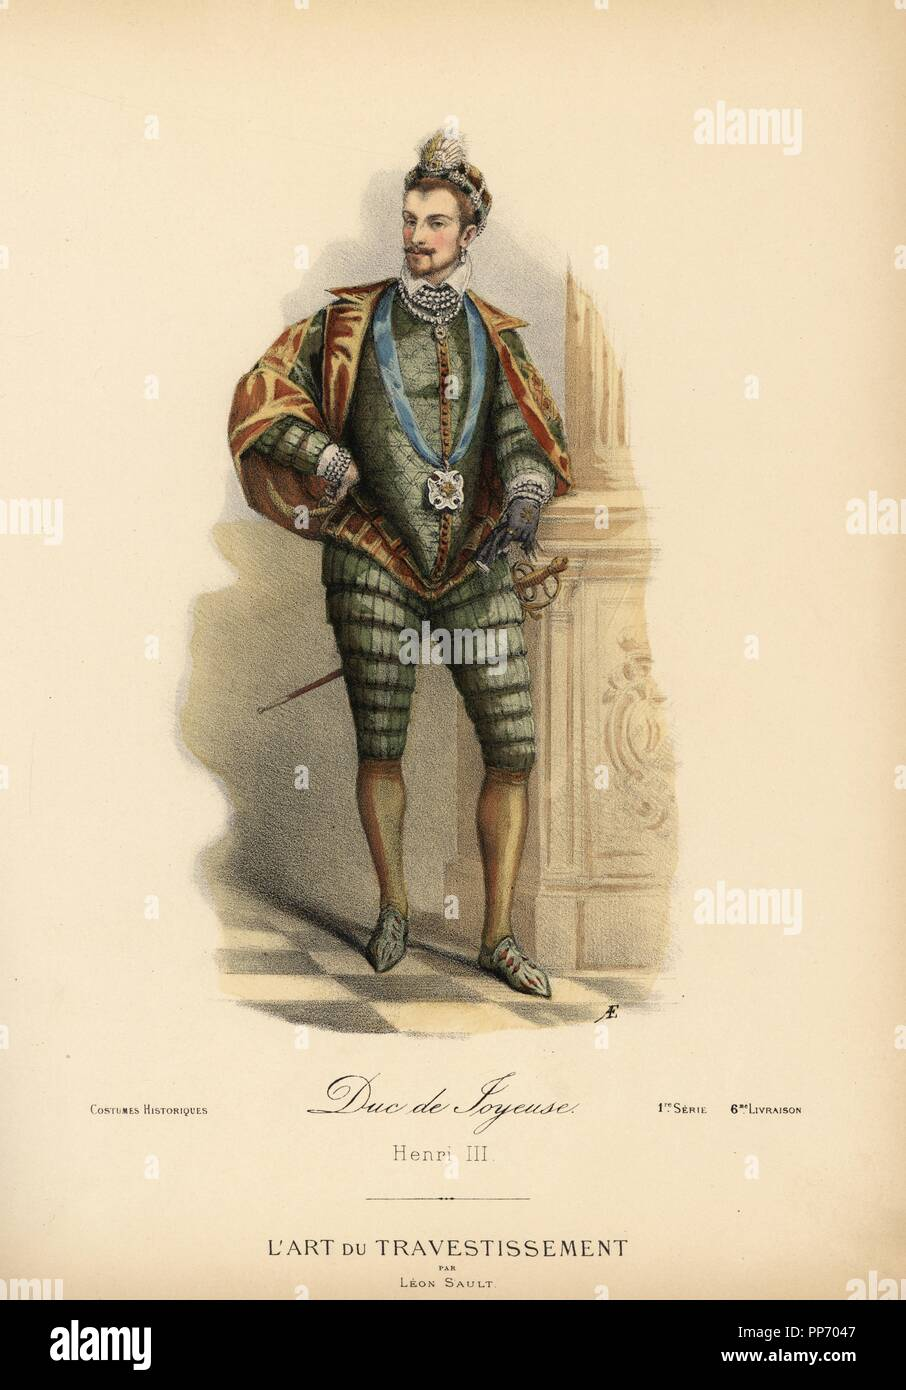 """Anne de Batarnay, Duke of Joyeuse, intimate friend of King Henri III of France, 16th century. He wears the Order of the Holy Spirit from a blue ribbon. Handcoloured lithograph by A.E. after a design by Leon Sault from """"L'Art du Travestissement"""" (The Art of Fancy Dress), Paris, c.1880. Sault was a theatre and opera designer and luxury fashion magazine publisher. Stock Photo"""